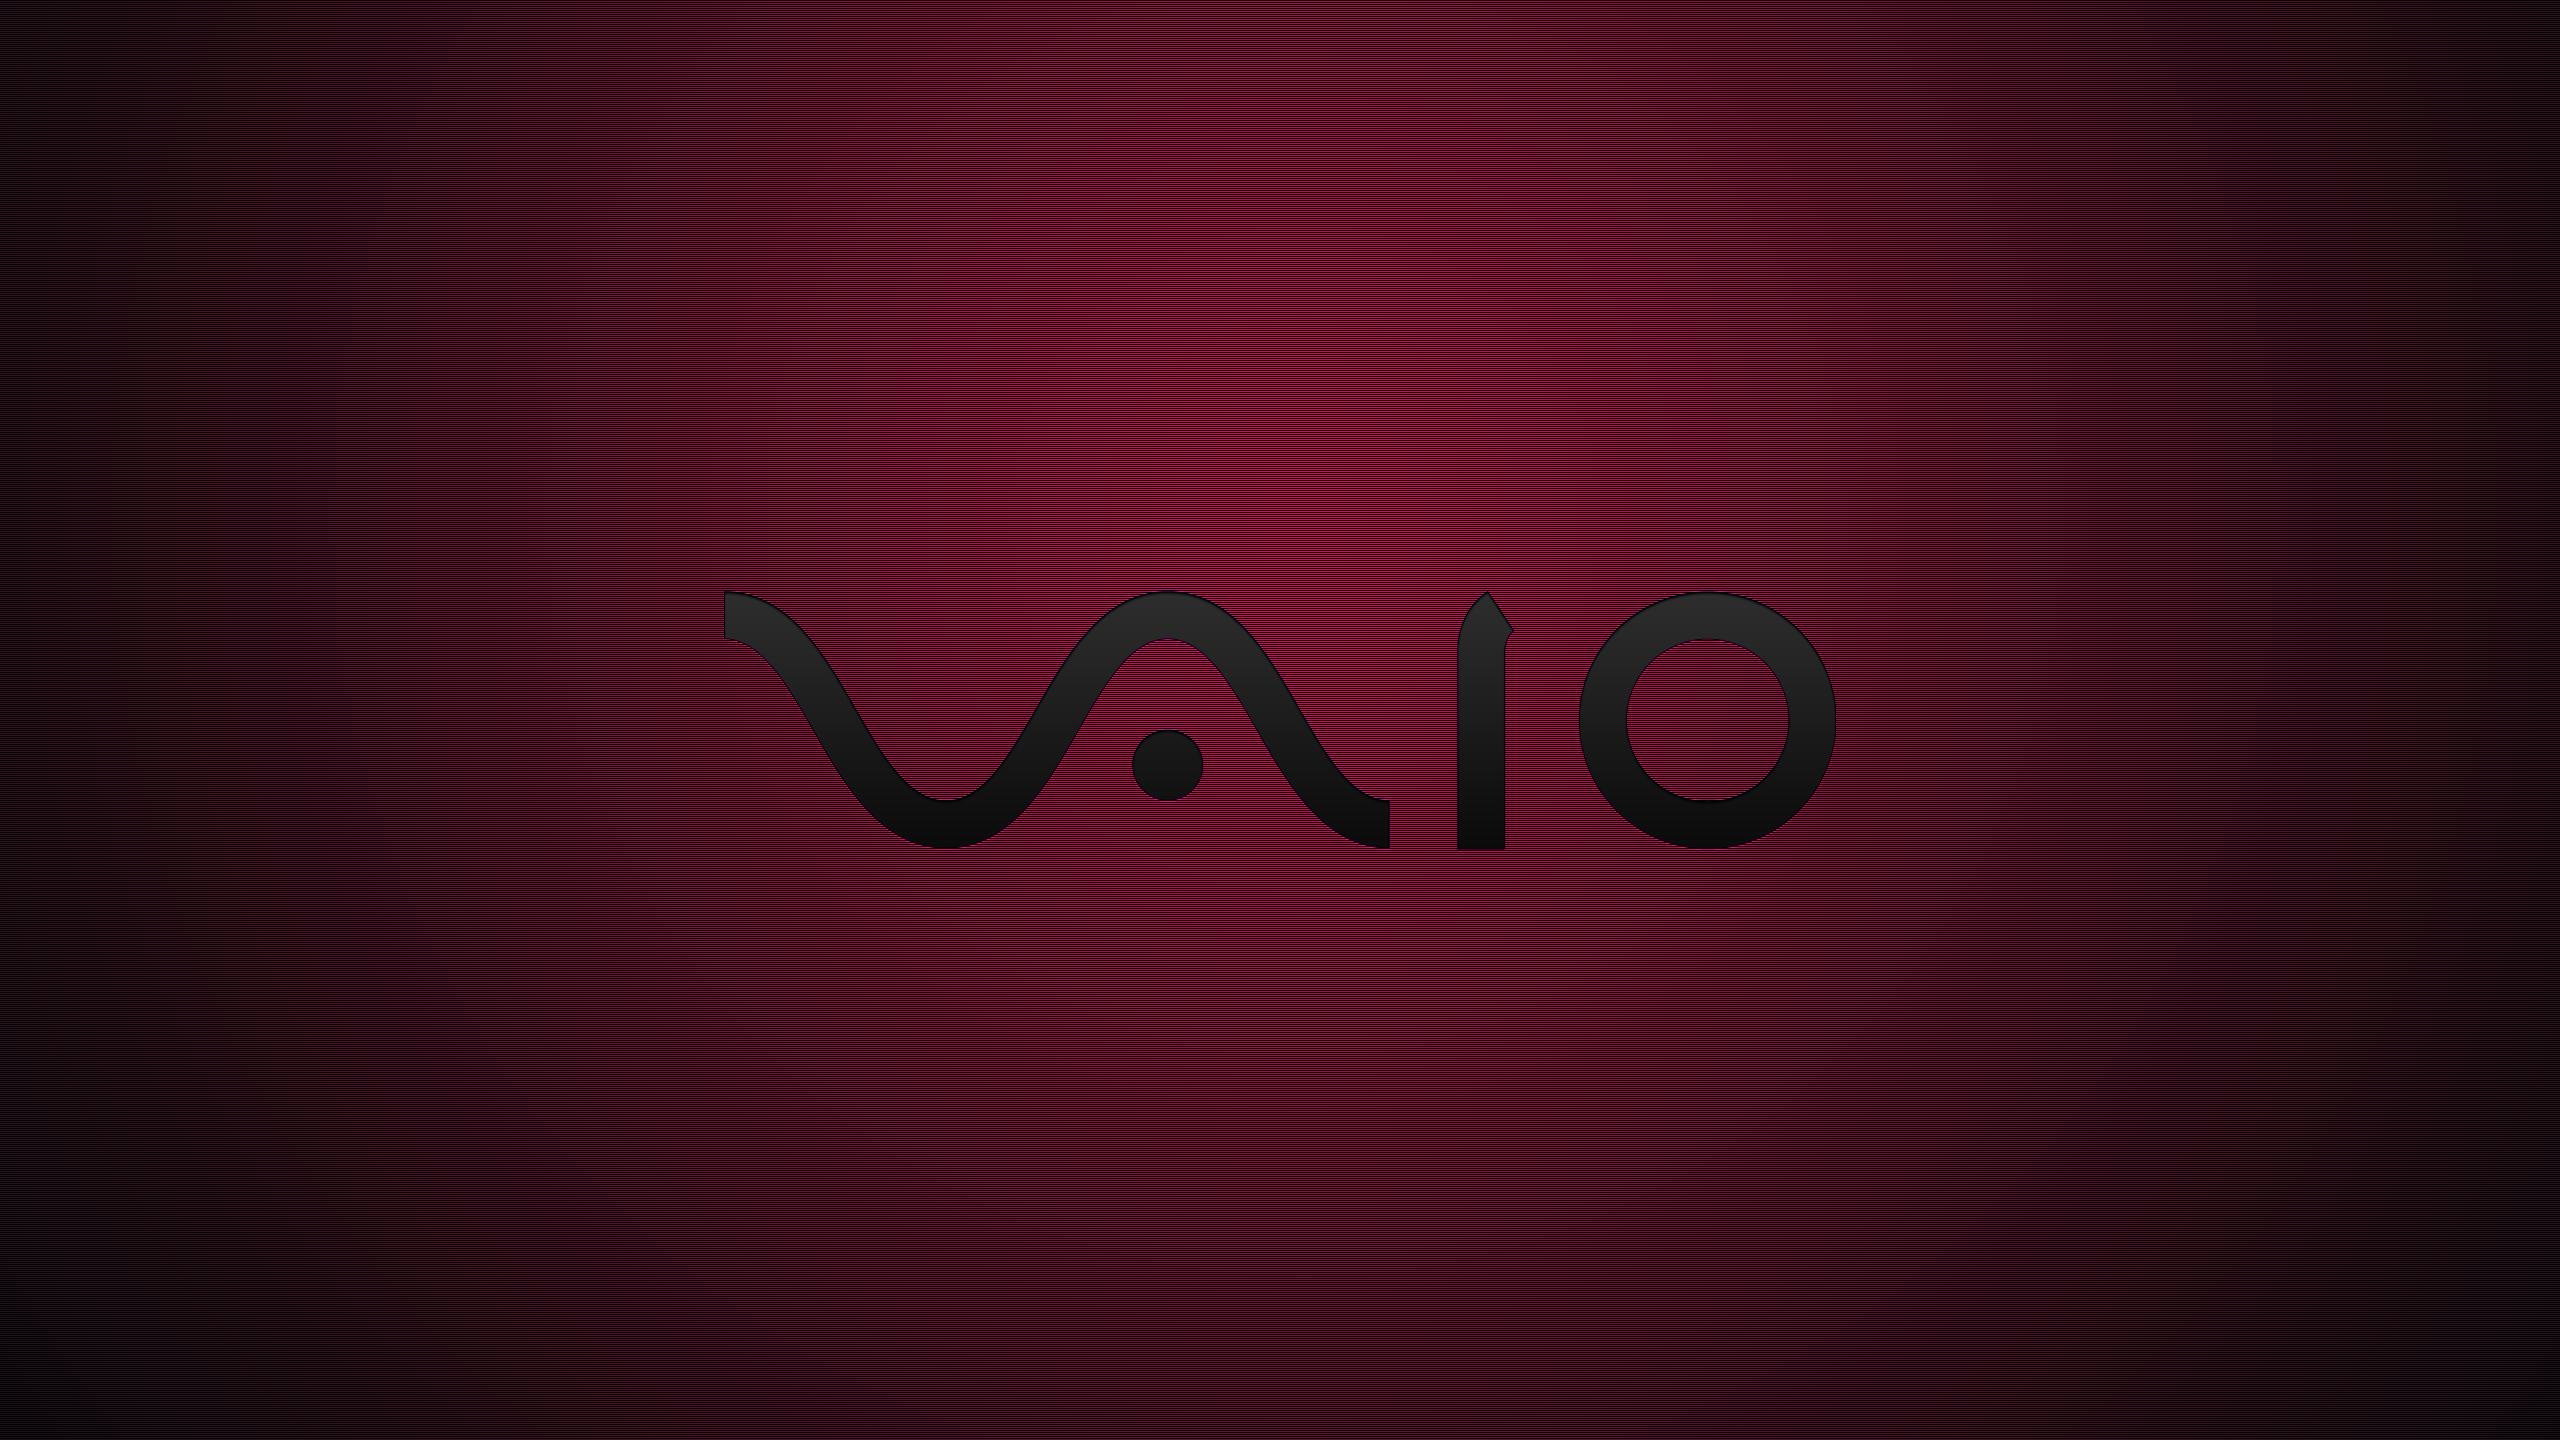 vaio red wallpaper by - photo #6